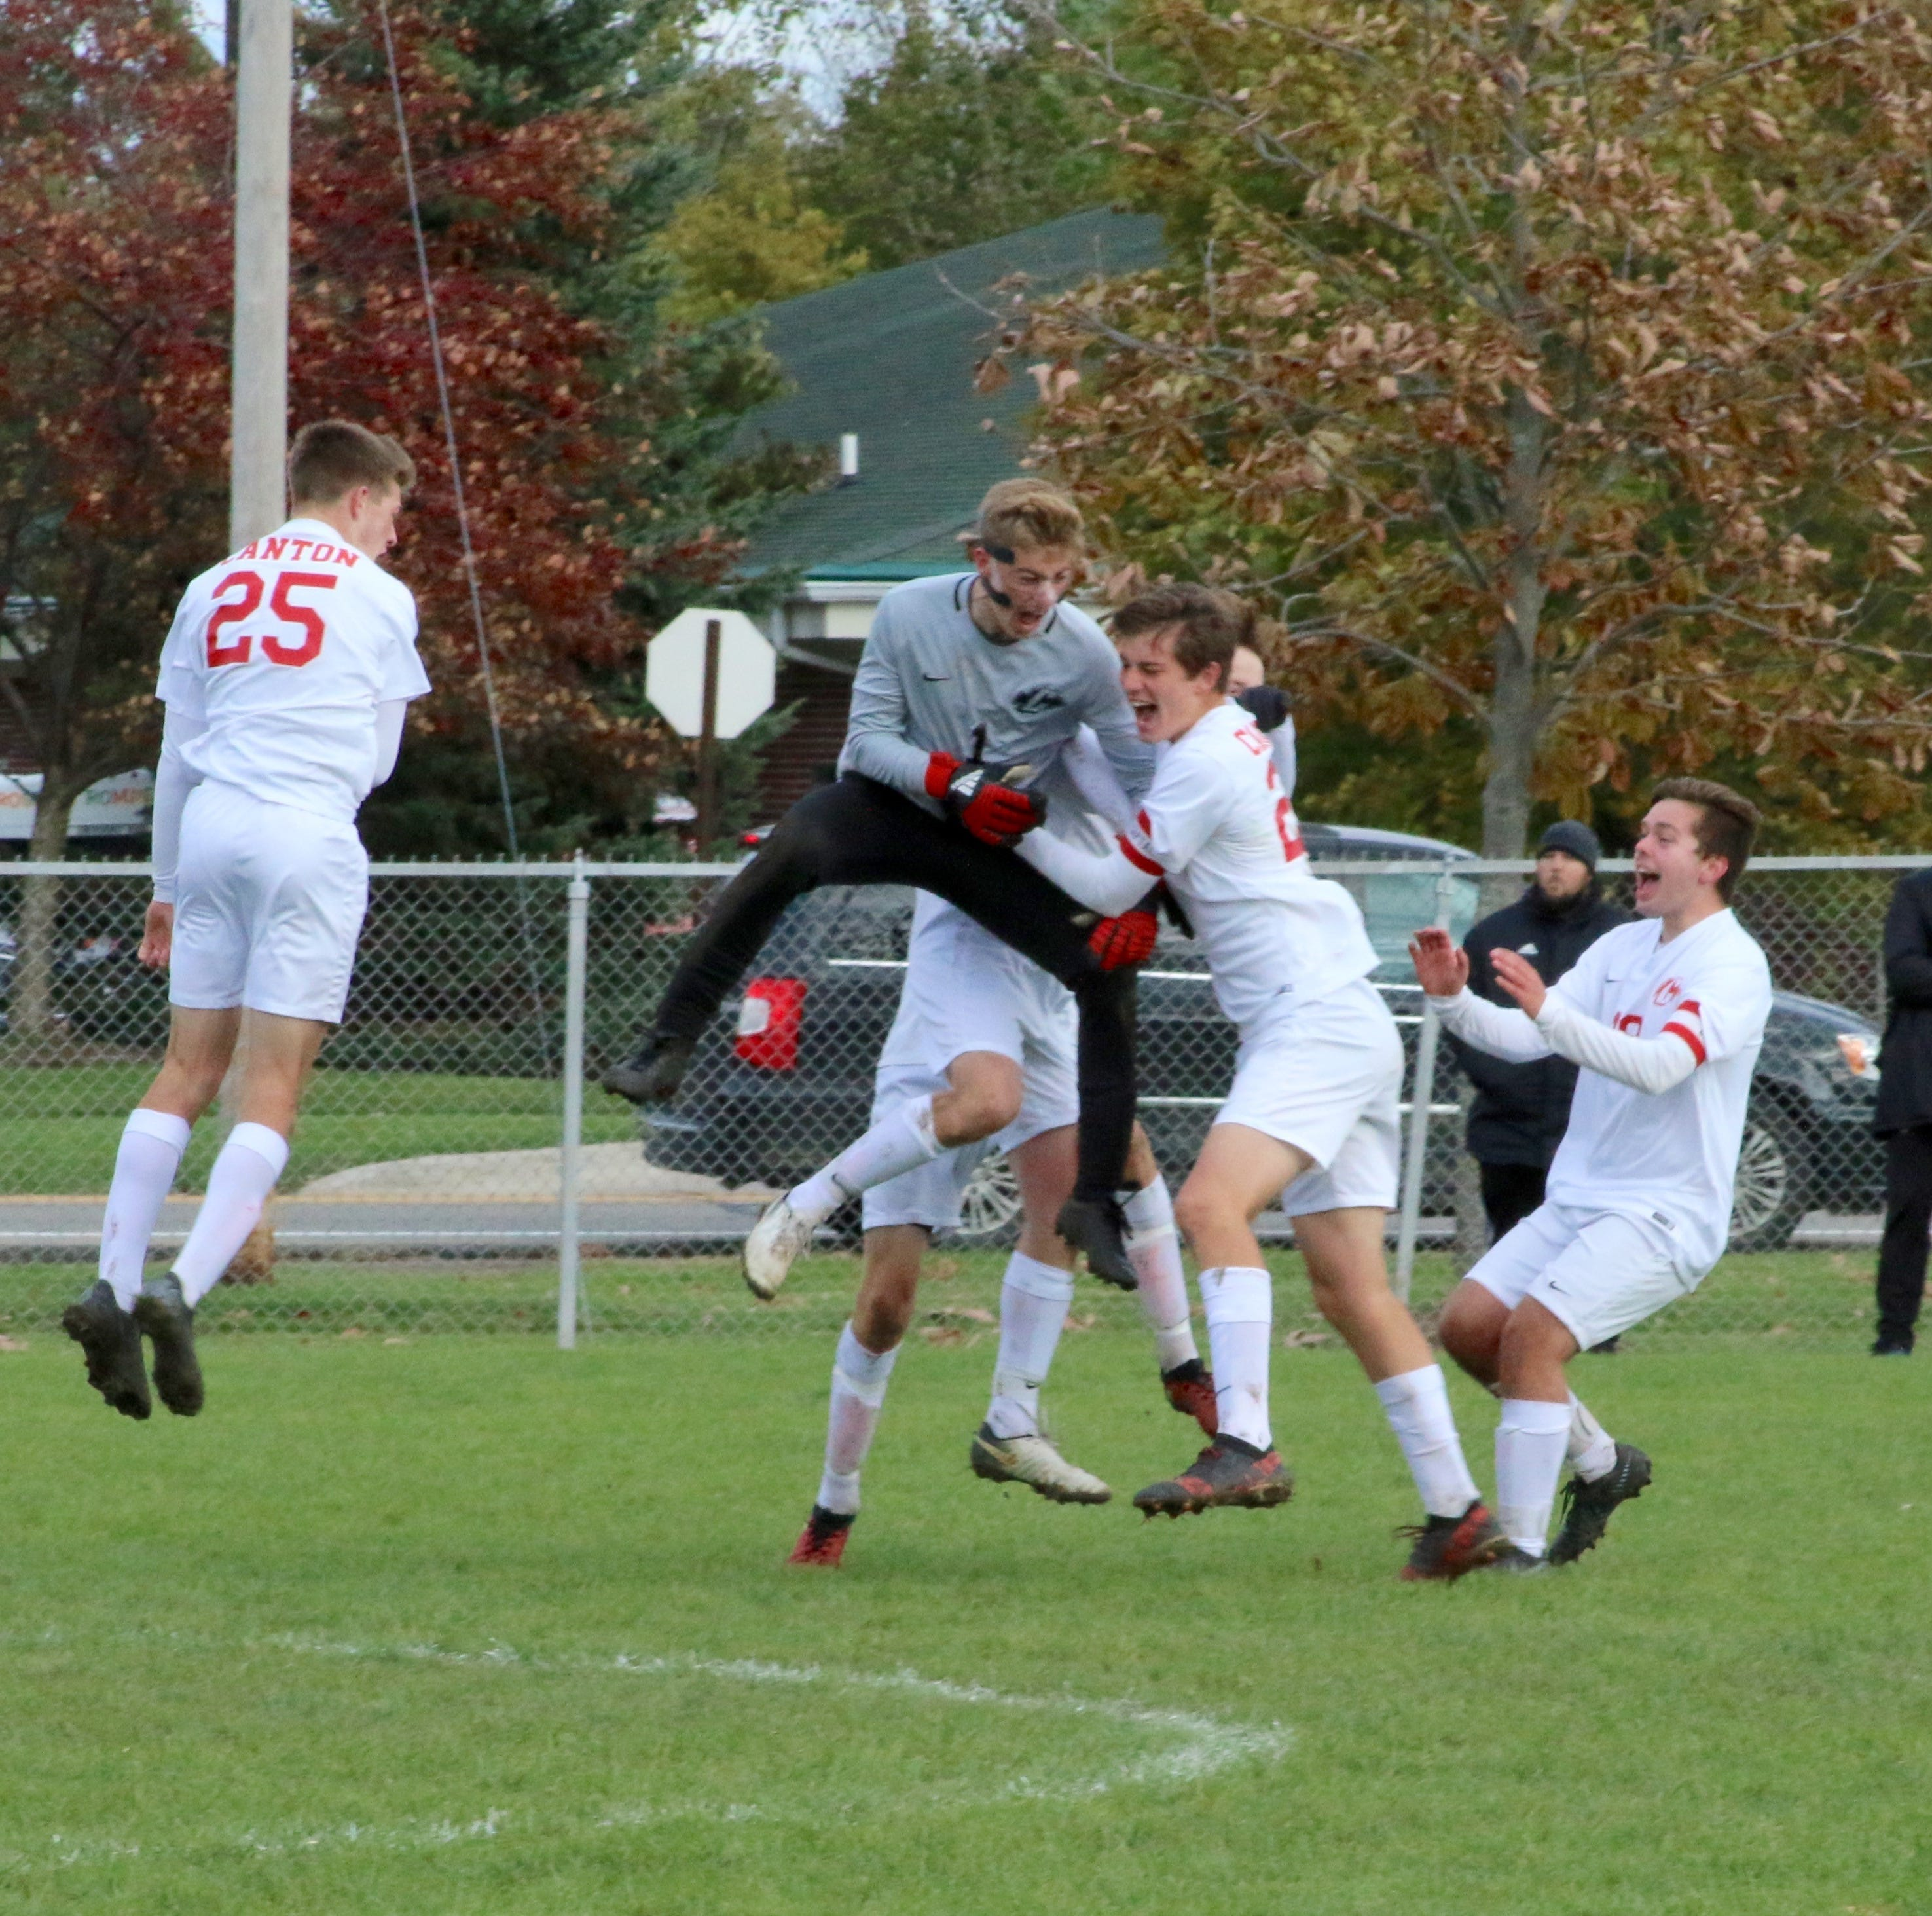 Canton edges Salem in PK shootout to win district final